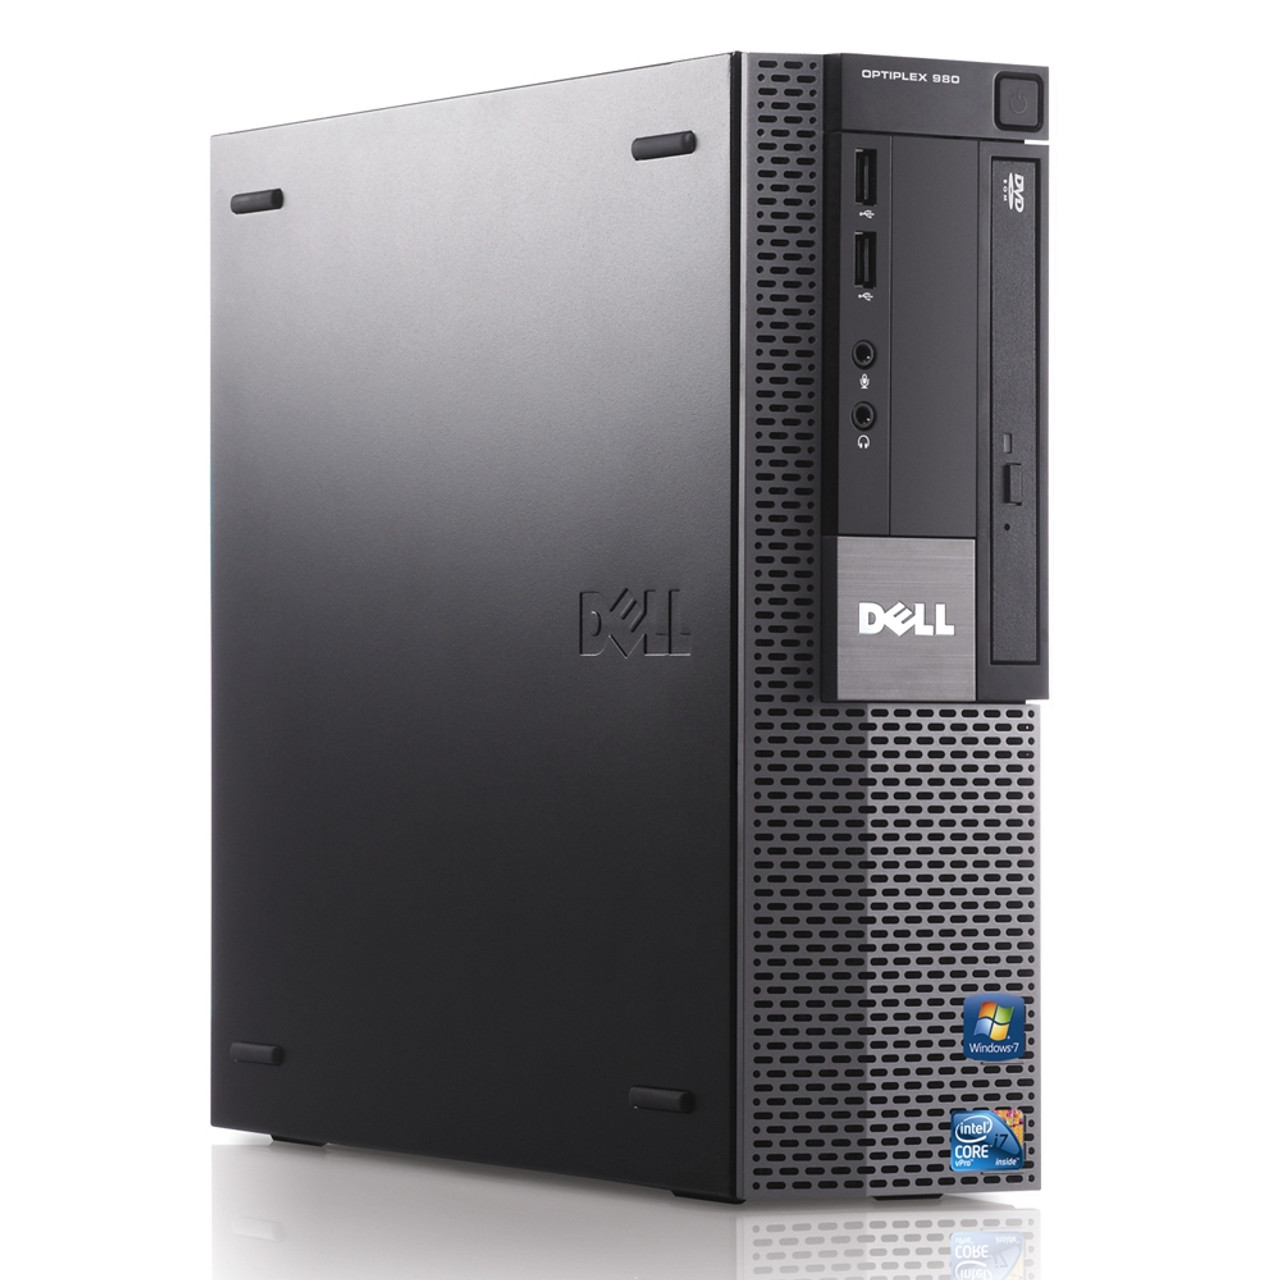 Dell Optiplex 980 SFF Core i5 3.2GHz, 4GB Ram, 250GB HDD, DVD-RW, Windows 10 Pro 64 Desktop Computer